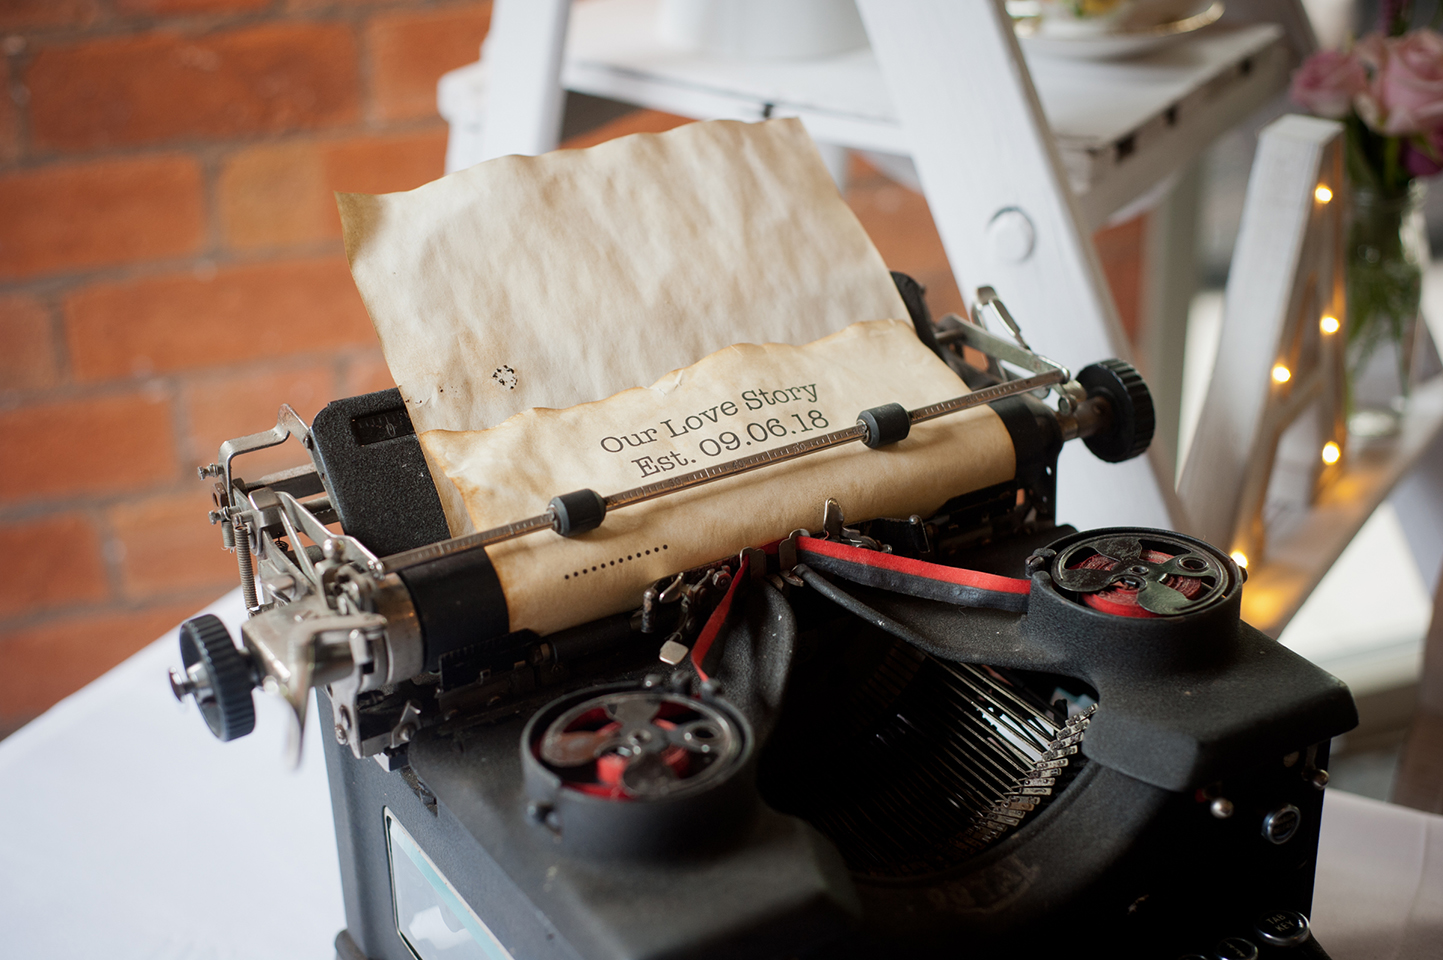 A Love story… writtne on a typewriter